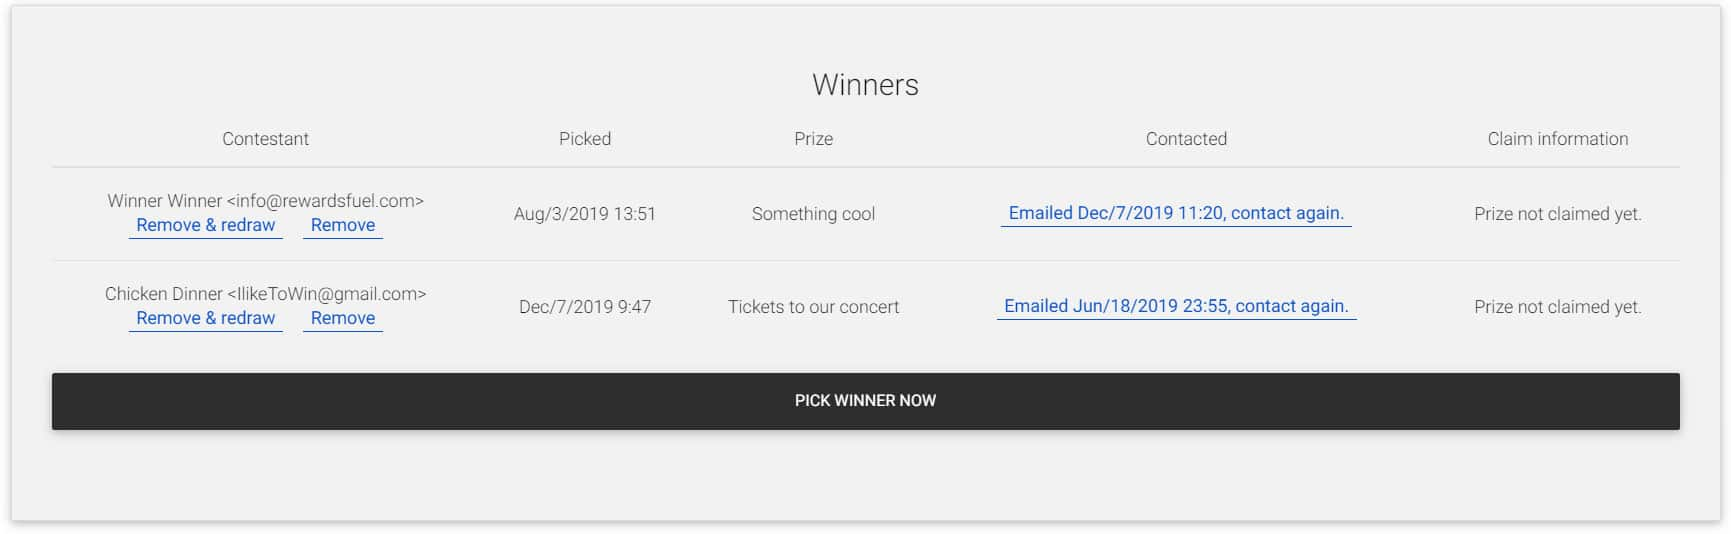 See who your winners are - contest winner generator